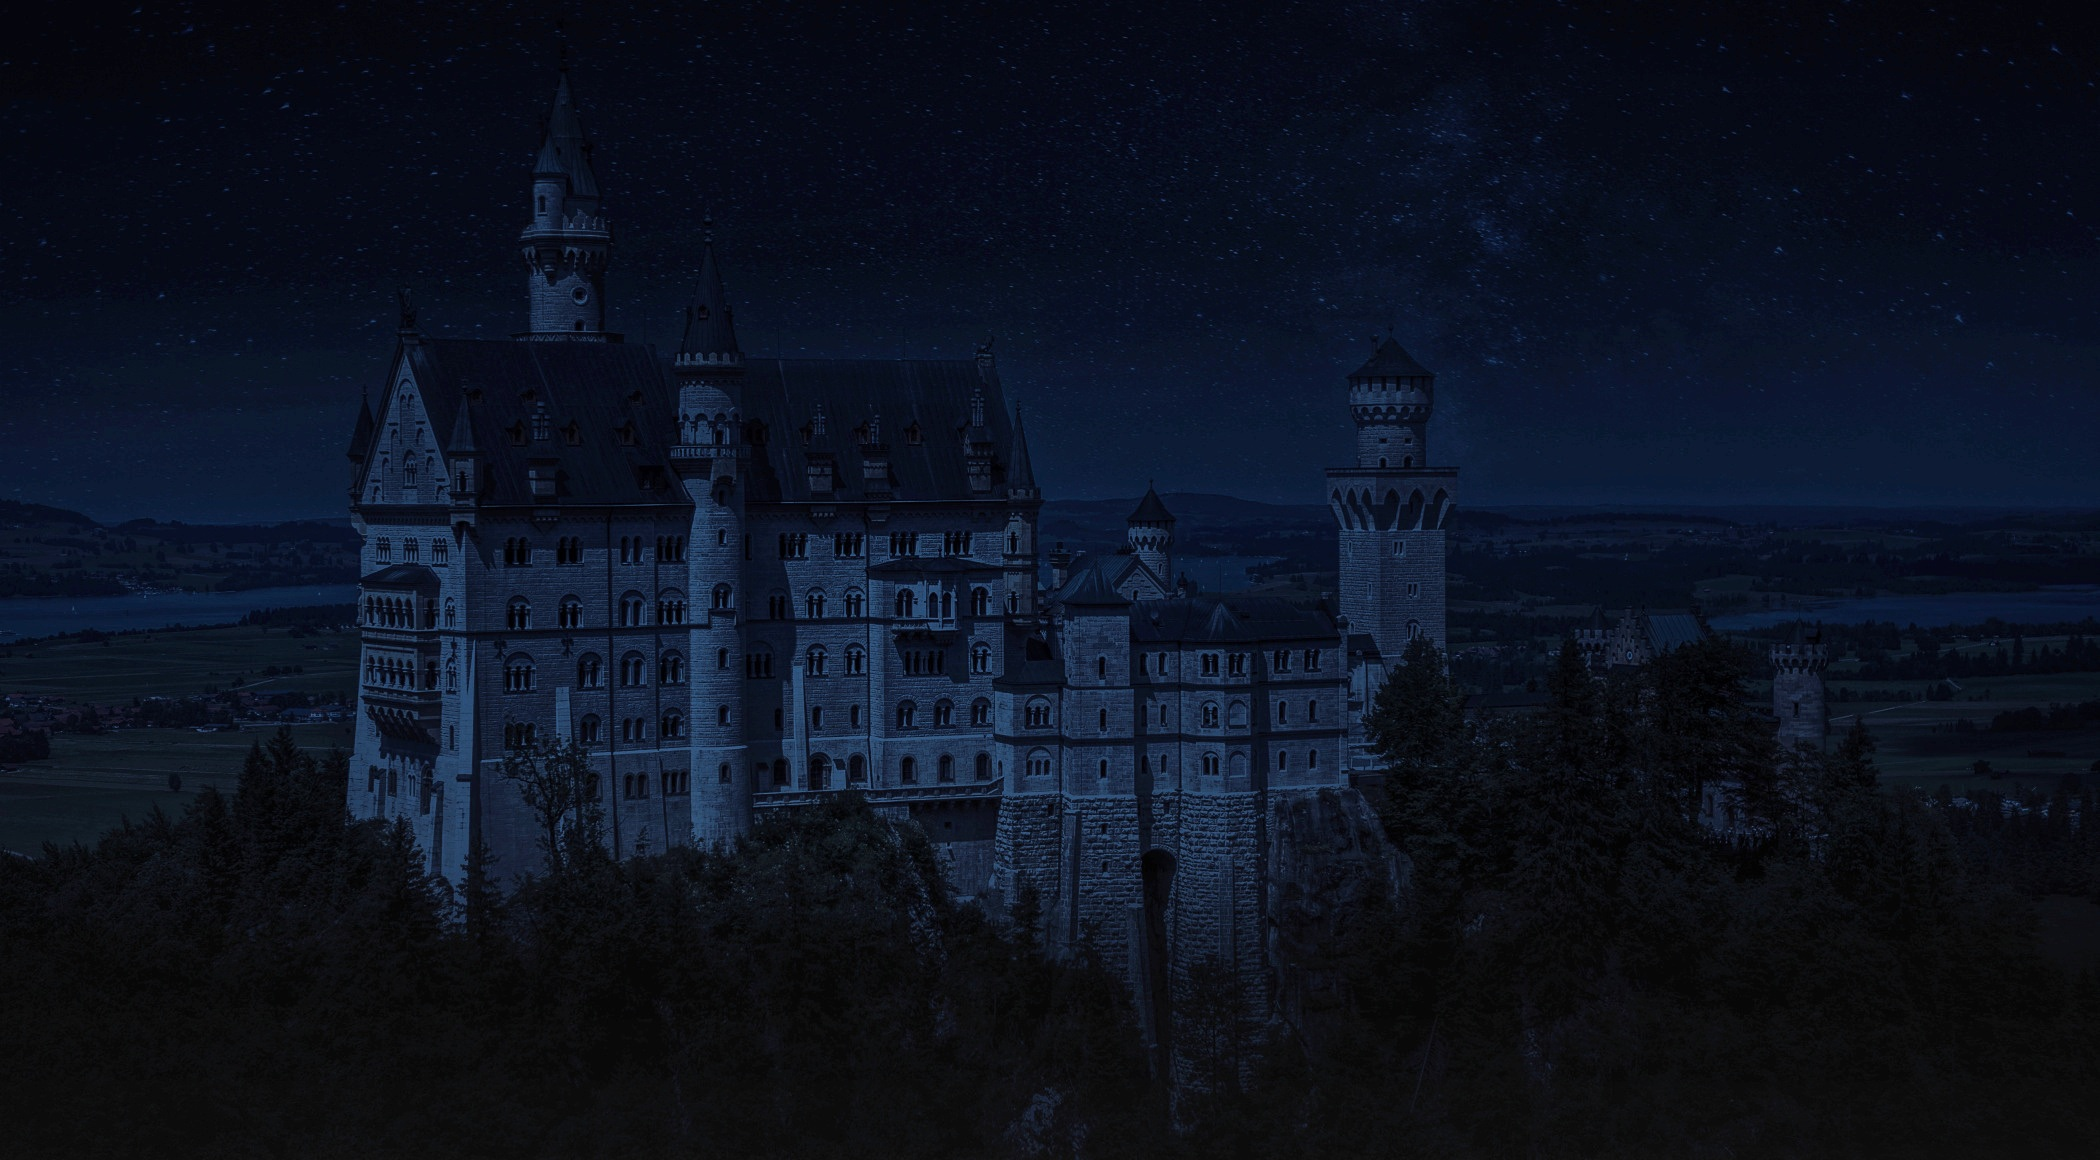 Color Full Hd Wallpaper Free Stock Photo Of Castle Castle At Night Castle